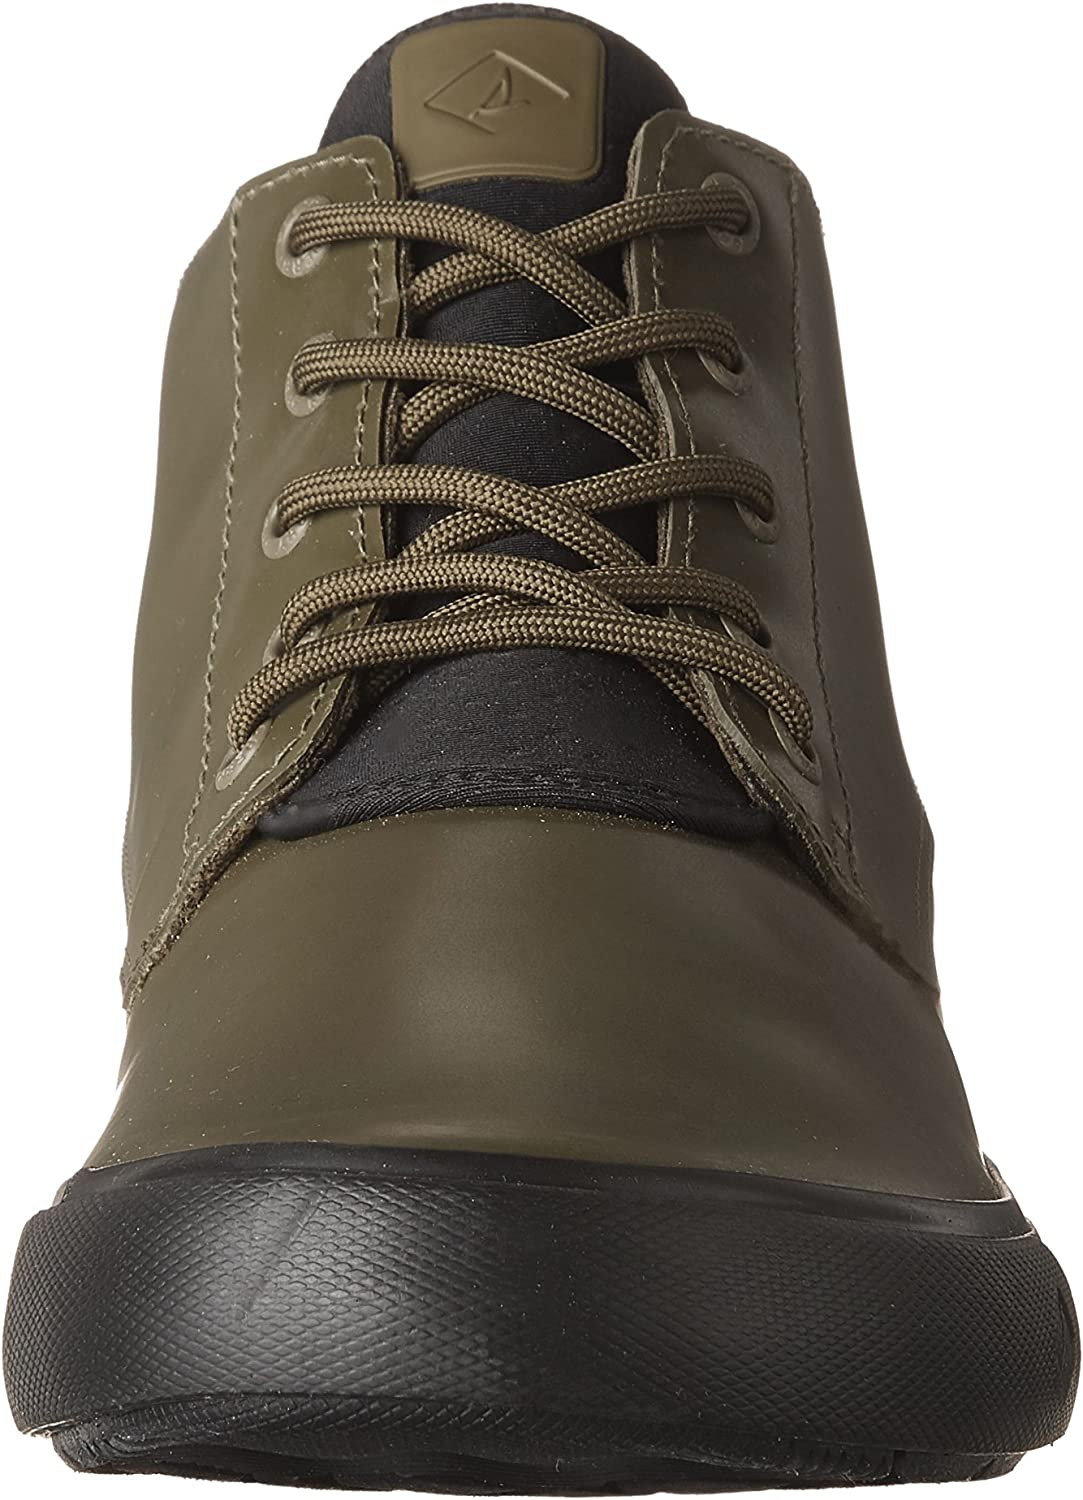 SPERRY Mens Cutwater Rubber Sneakers